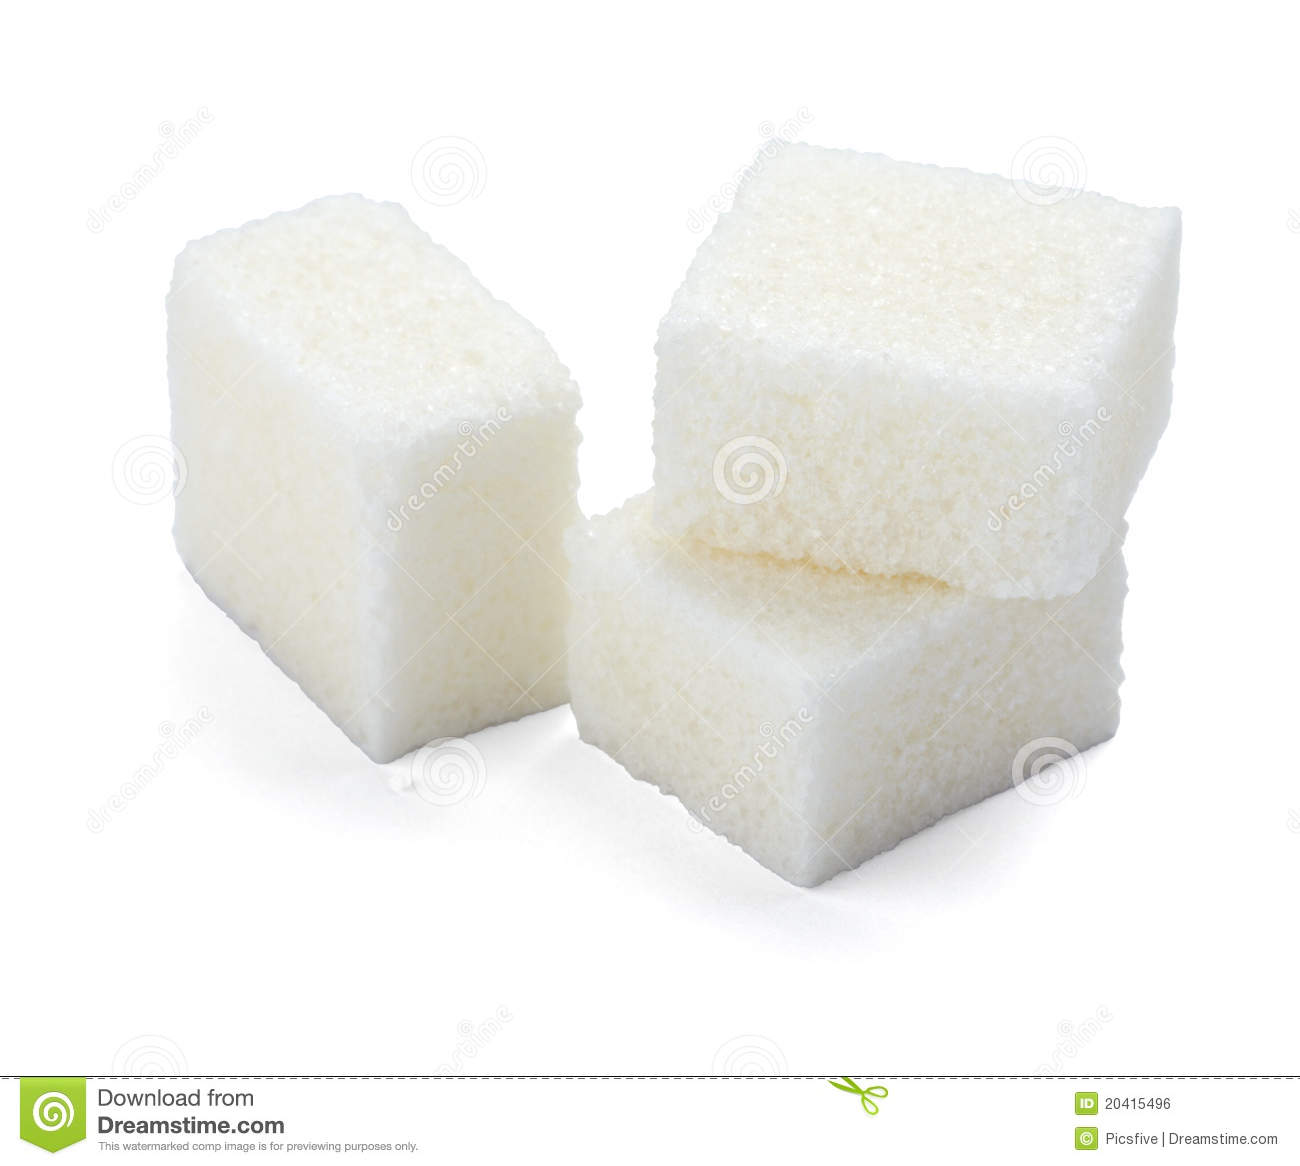 Sugar Cubes Royalty Free Stock Image - Image: 20415496